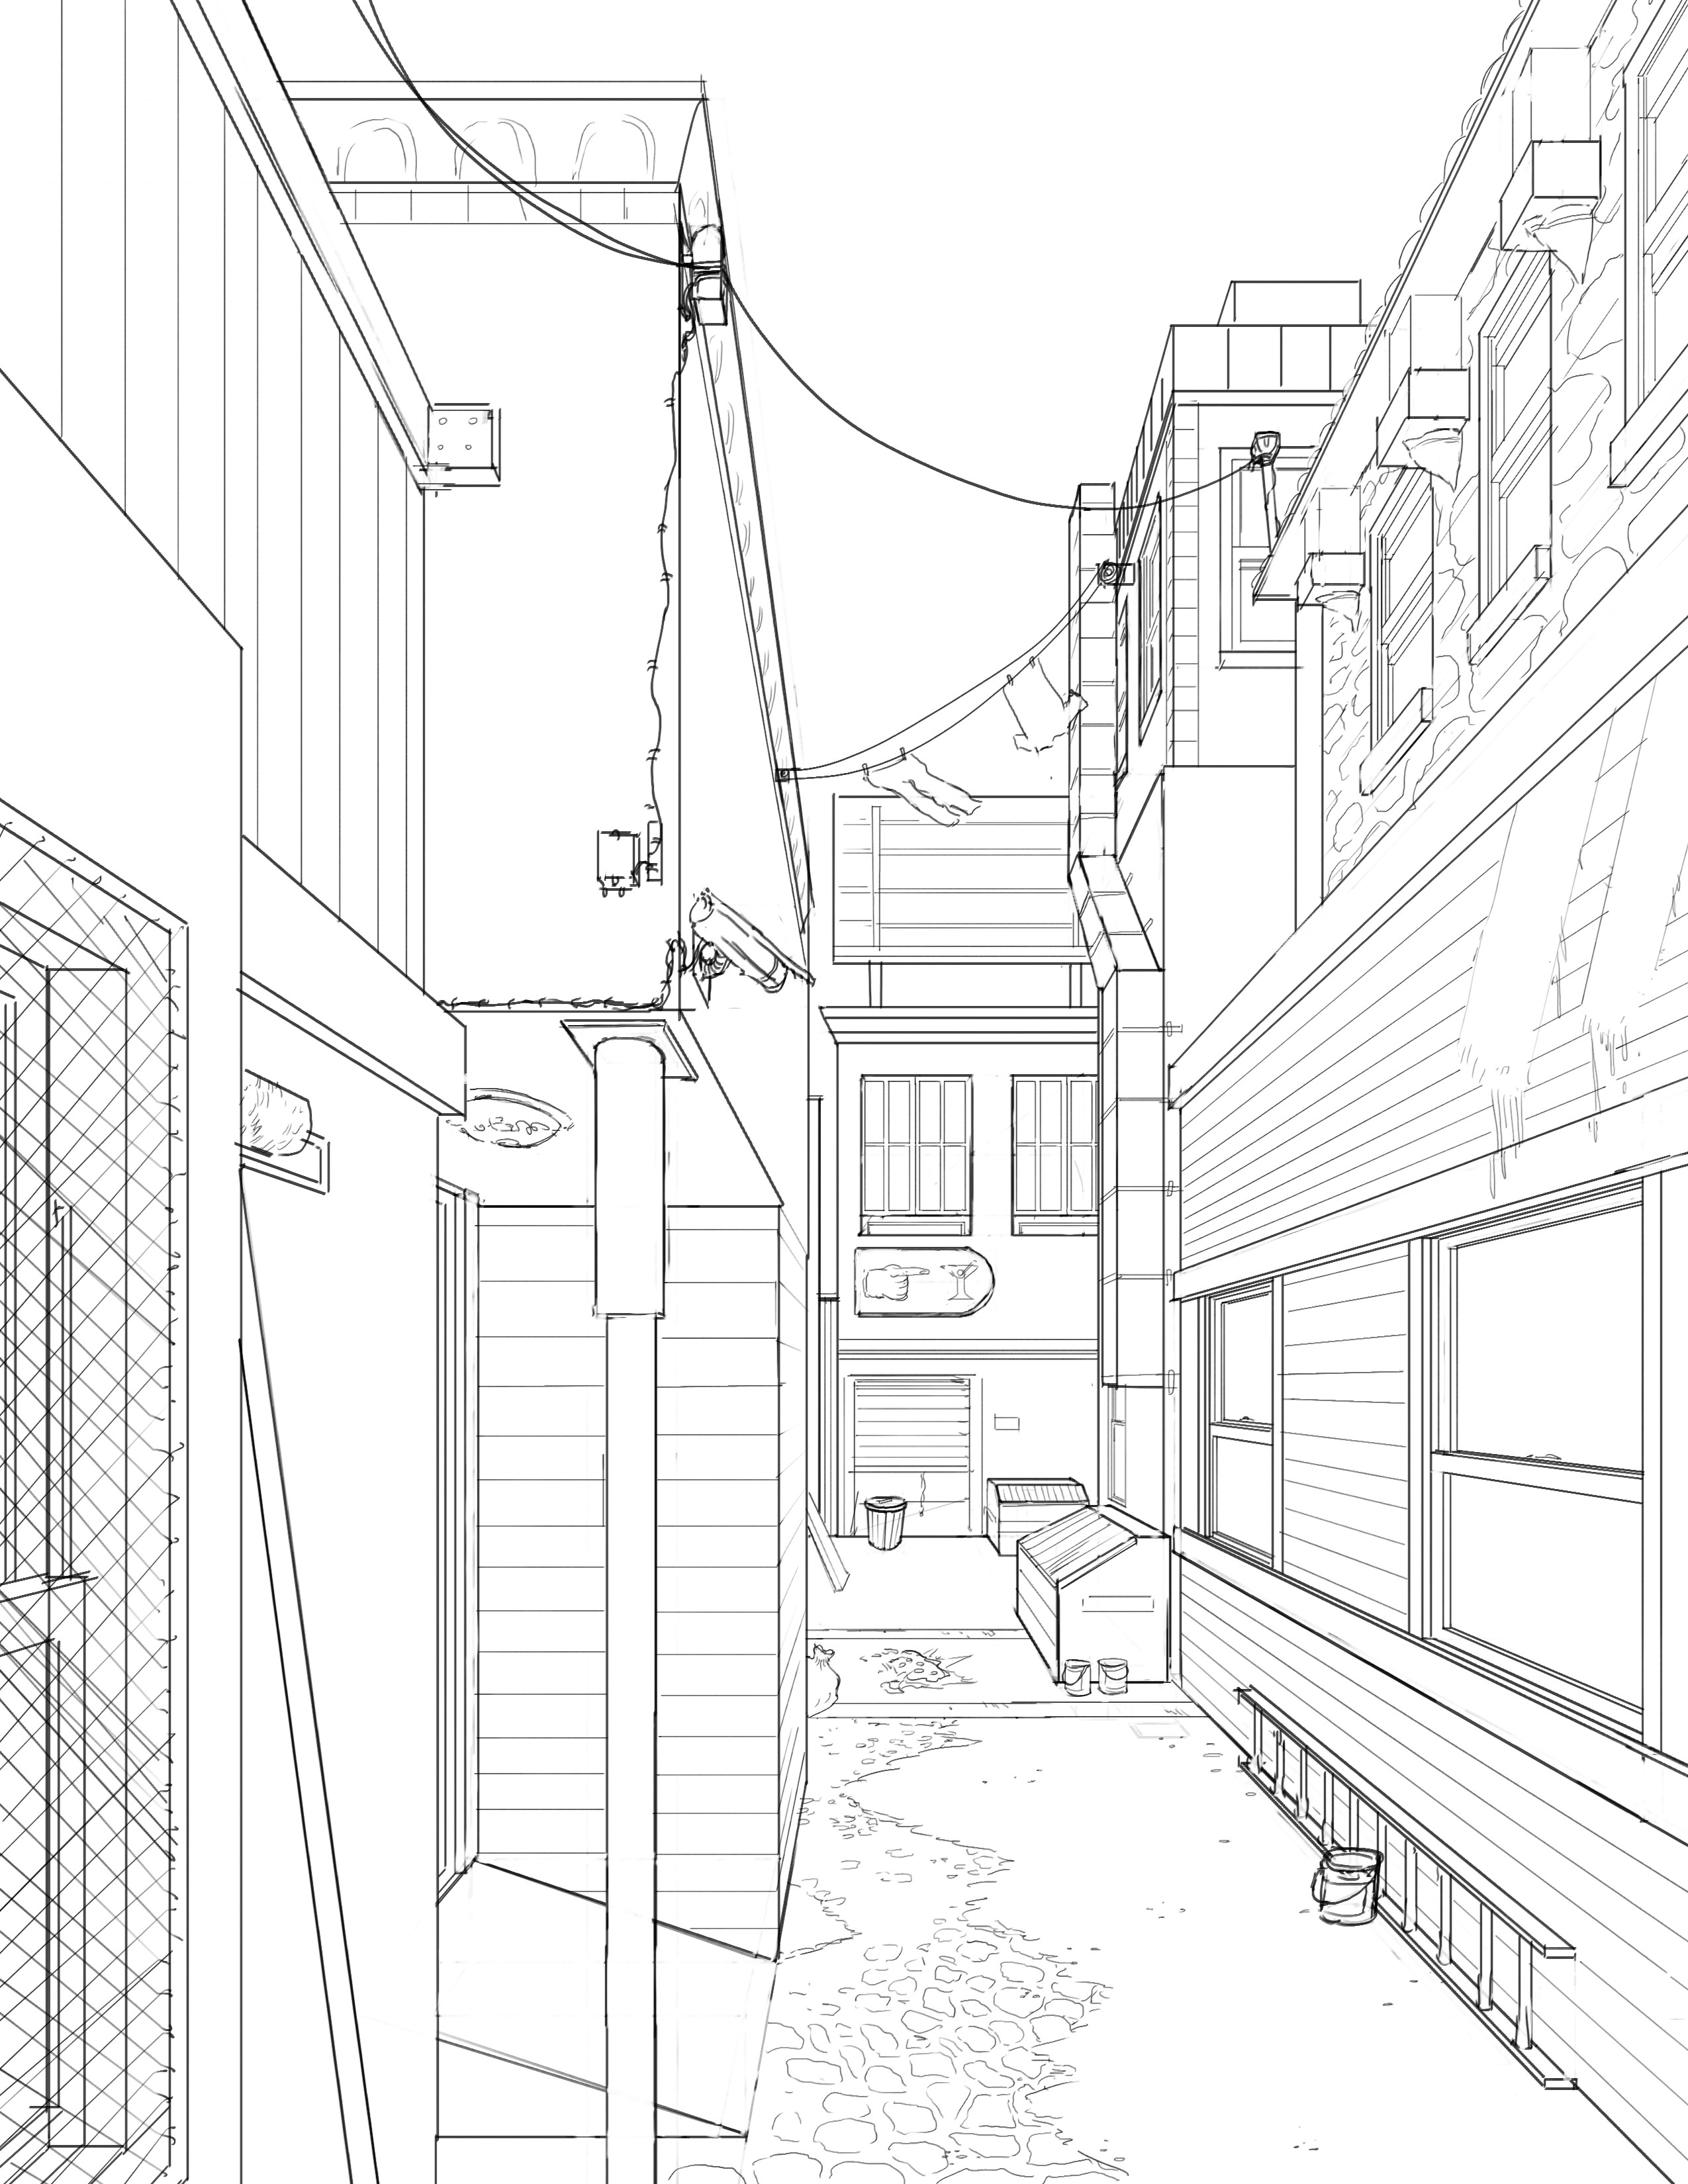 The goal of this illustration was for an assignment about perspective and drawing the linework for an alley of our own design.